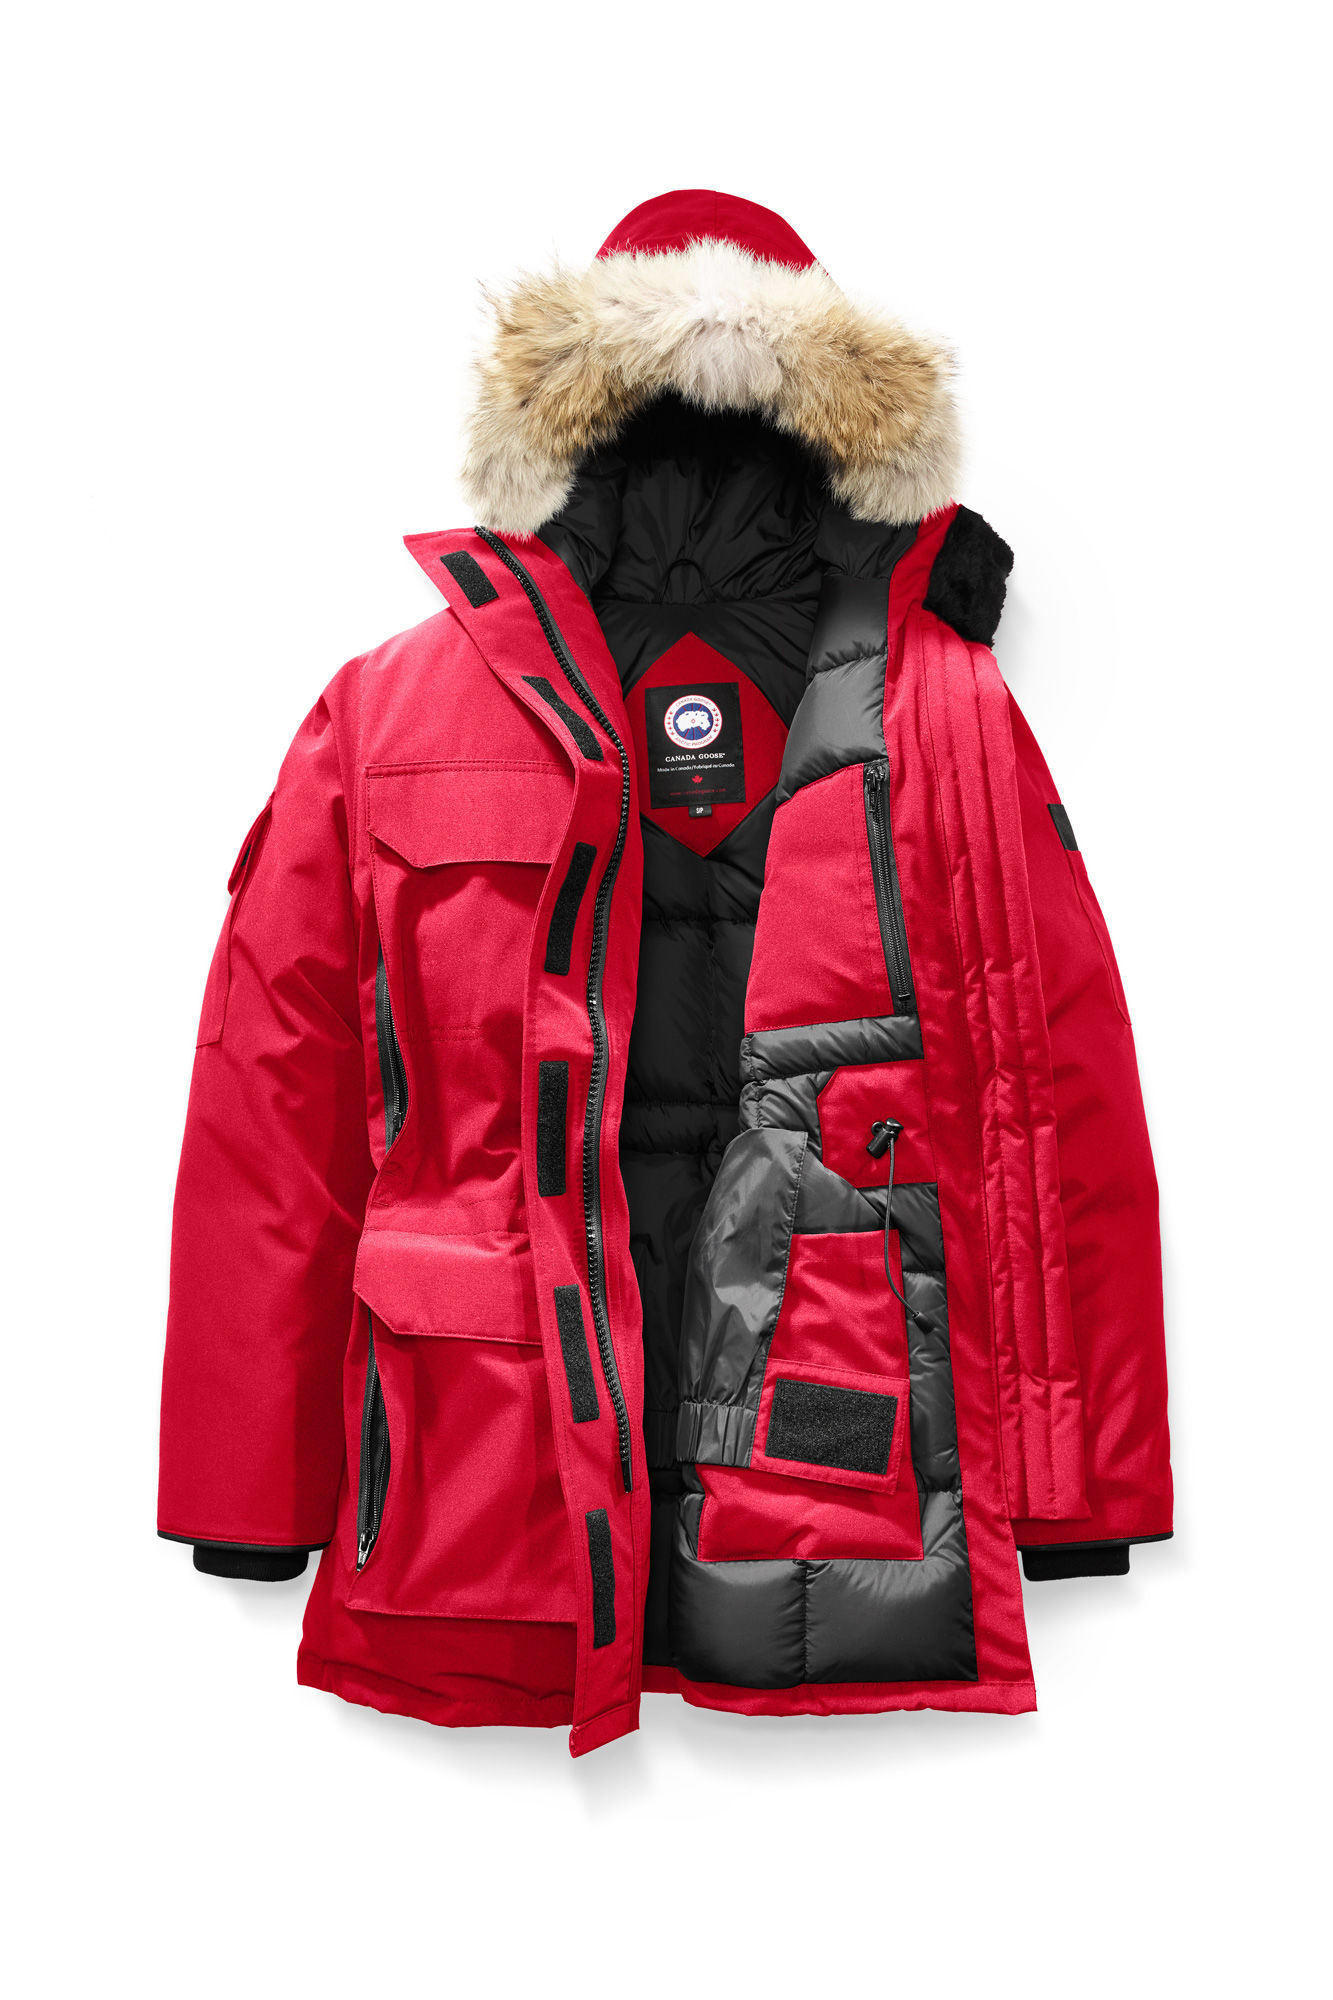 EXPEDITION PARKA WOMEN'S RED 4572